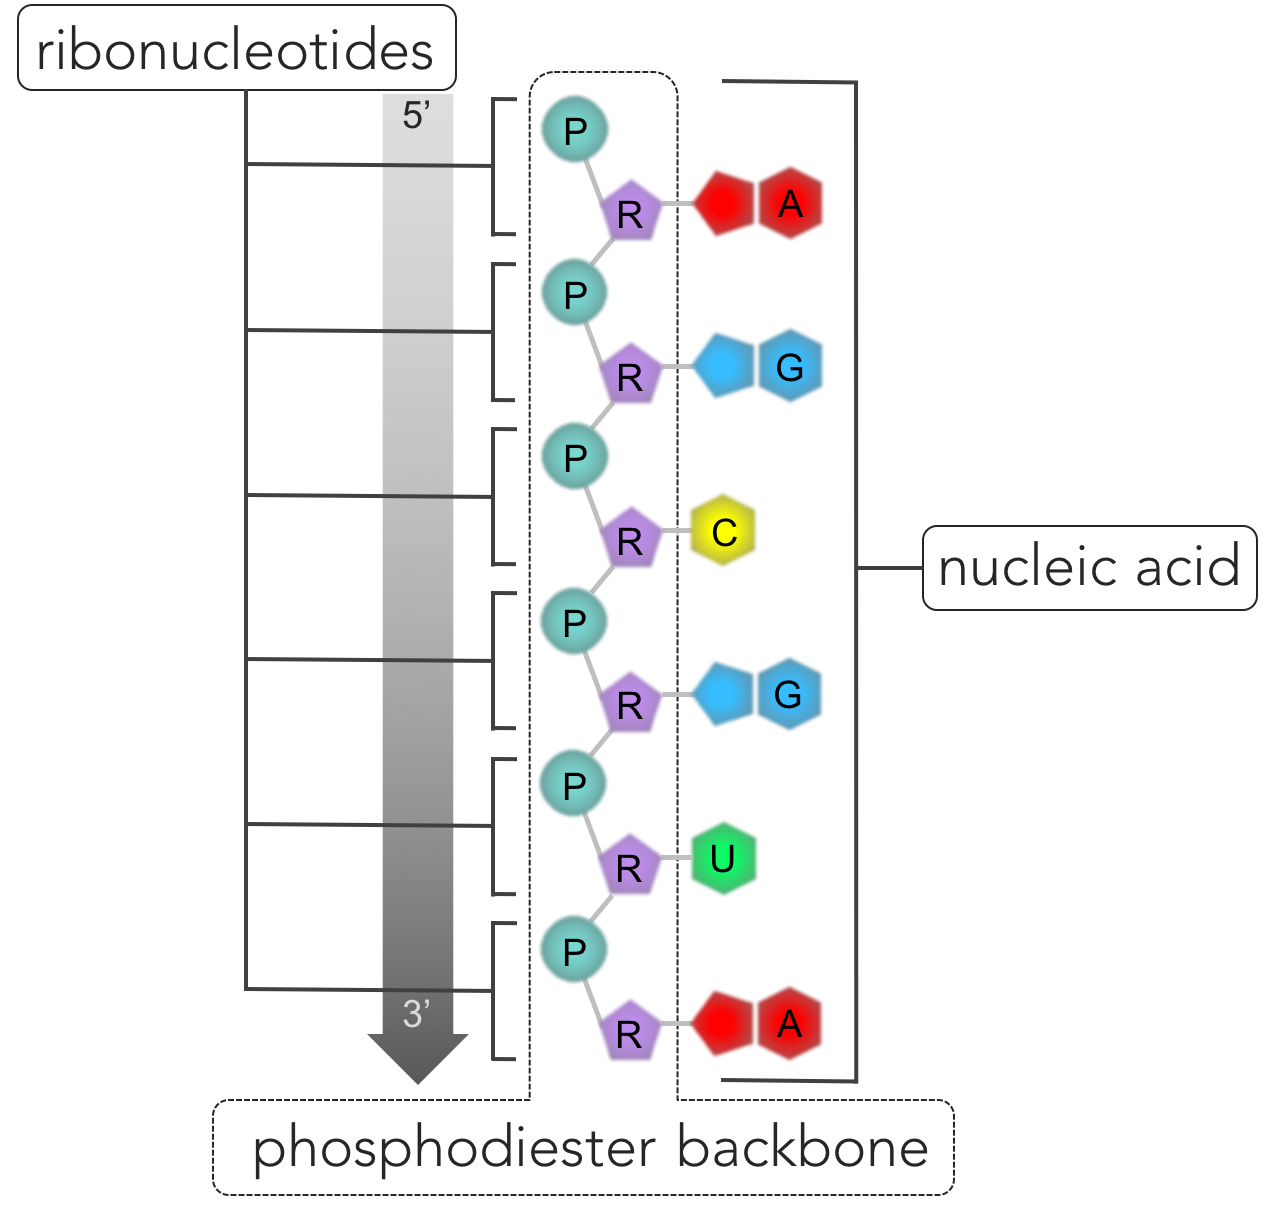 Figure 6.  RNA. Nucleic acids are polymers composed of a single strand (as in RNA) or two strands (DNA) of nucleotides connected by phosphodiester bonds. The repeating pattern of connected phosphate groups (P)and sugars (R) connected form the phosphodiester backbone, while the nitrogenous bases (A, U, C, and G in the case of RNA) hang off the side. One side of the strand of the nucleic acid is bounded by a phosphate group (denoted the 5' end) and a sugar group is located on the opposite end (denoted 3').